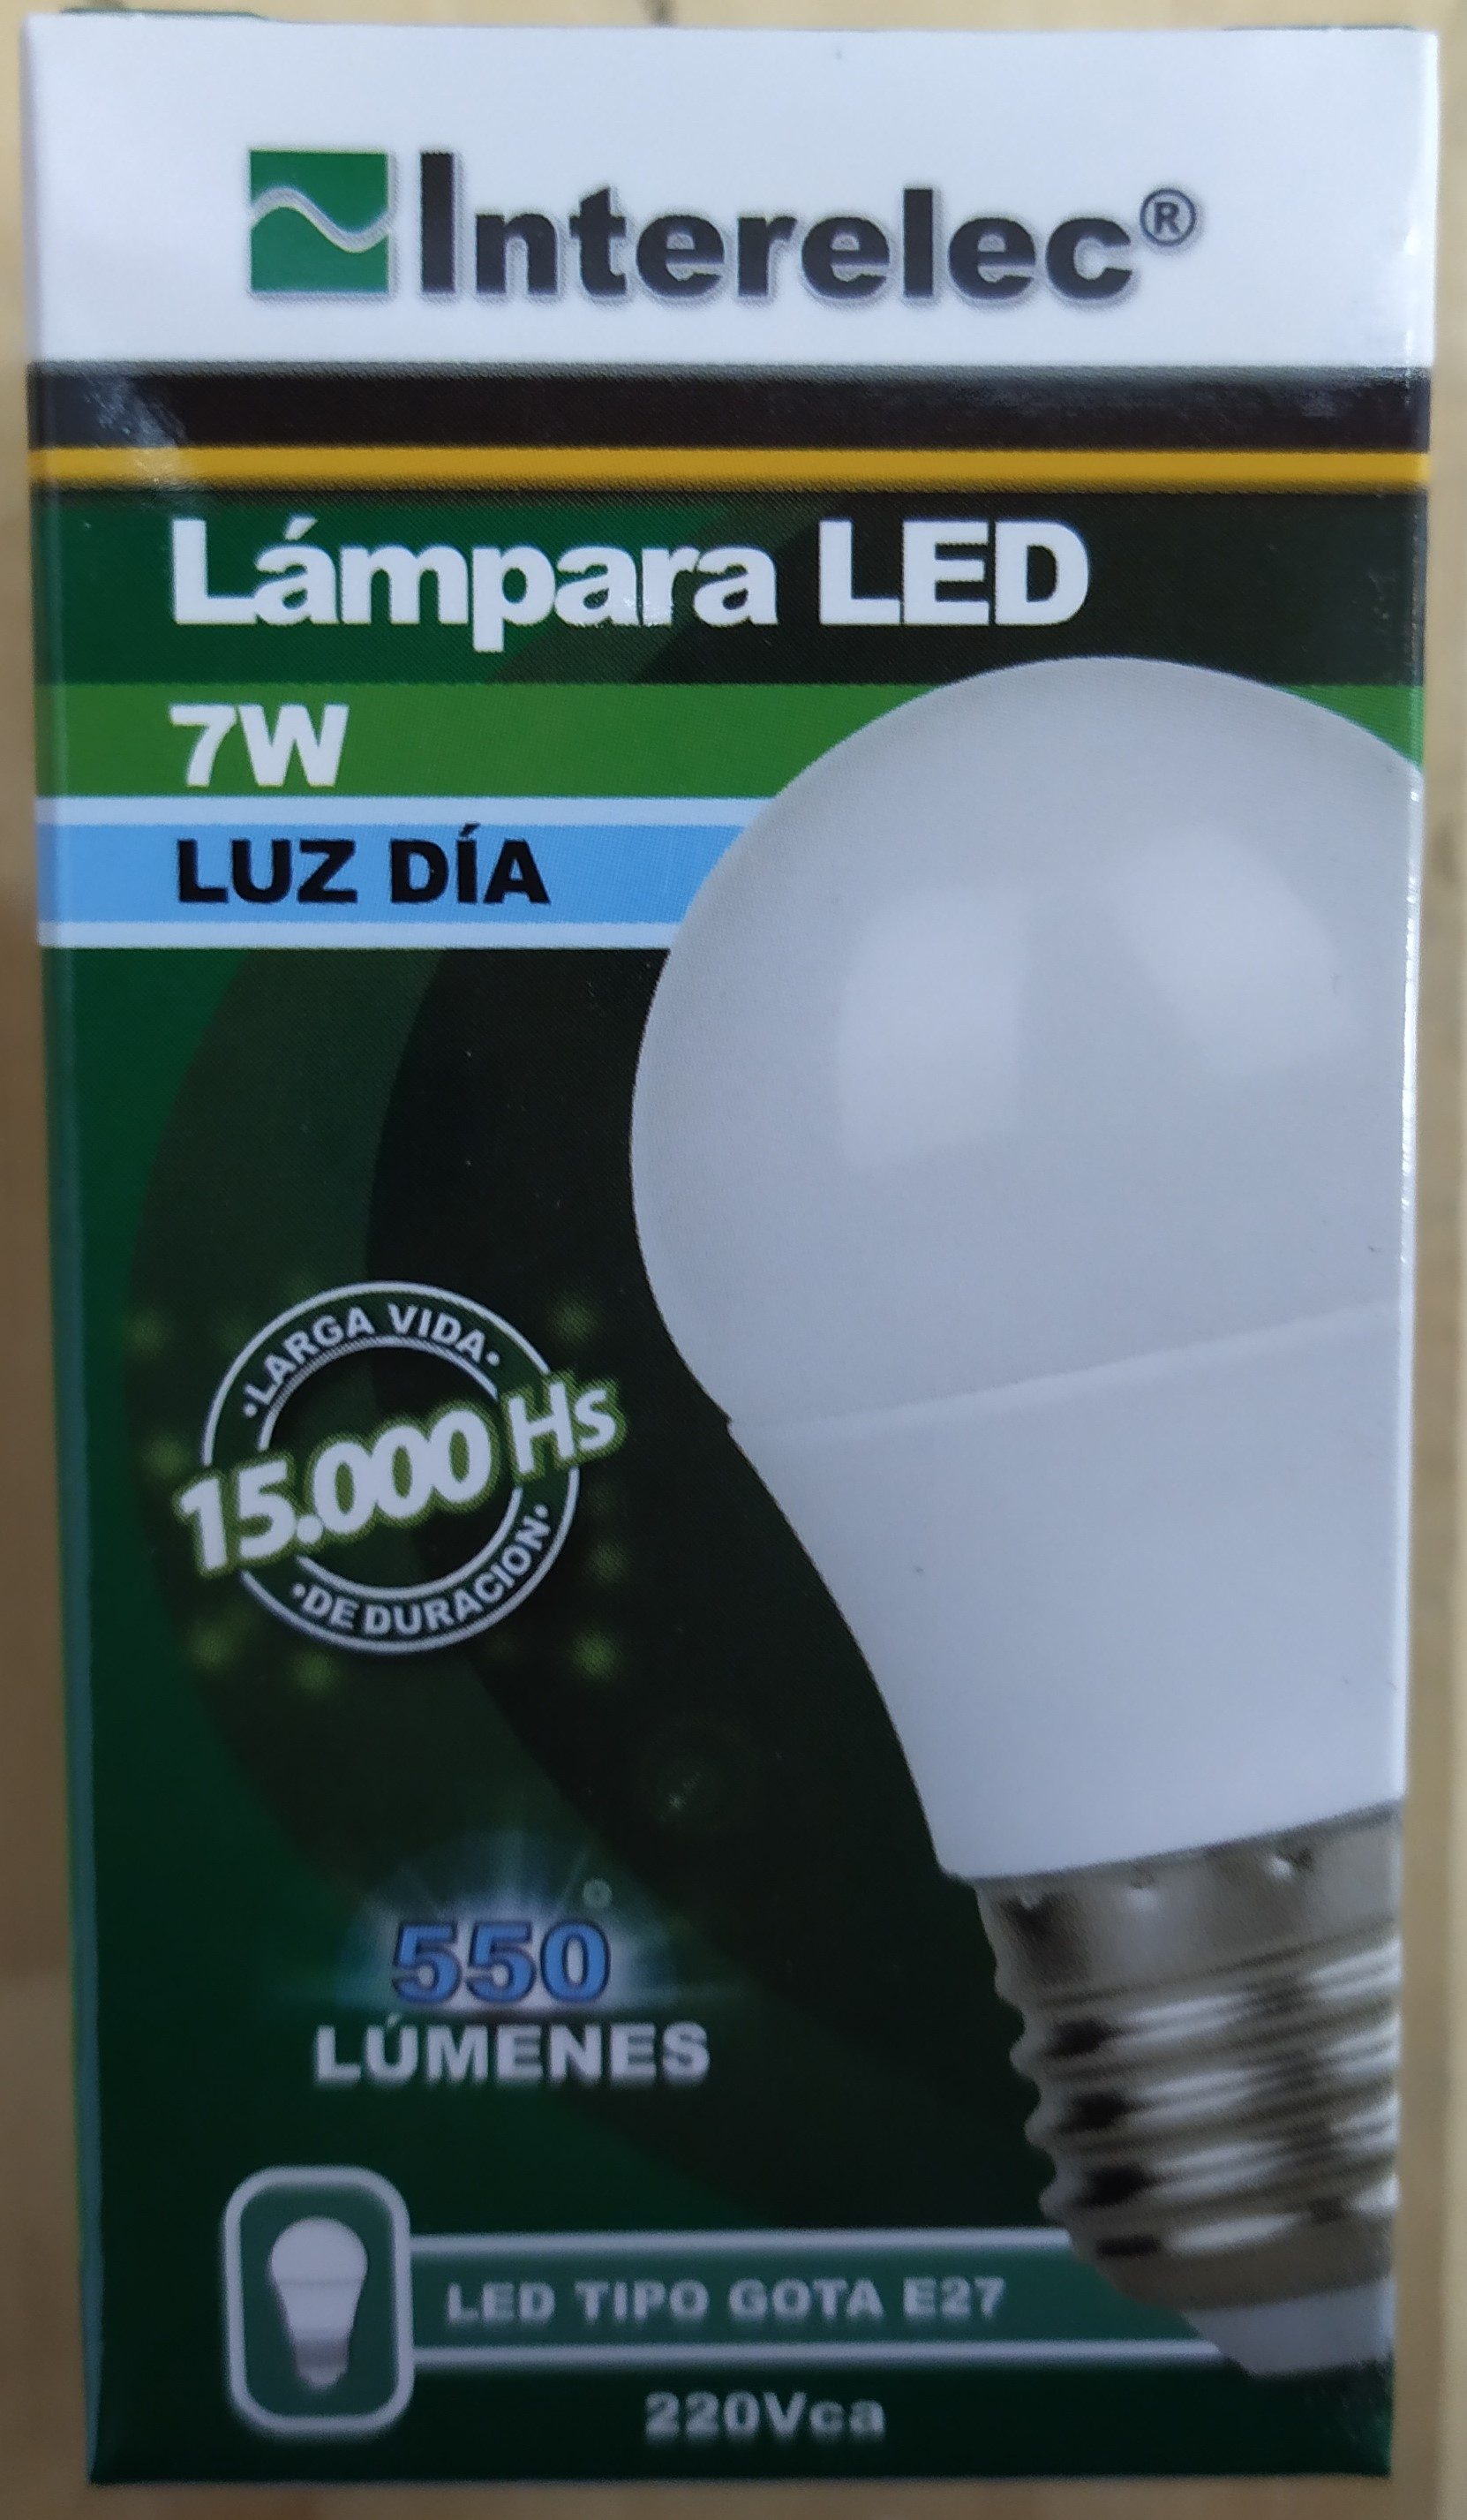 E16 LAMPARA LED TIPO GOTA BLANCO FRIO 7W E27 INTERELEC